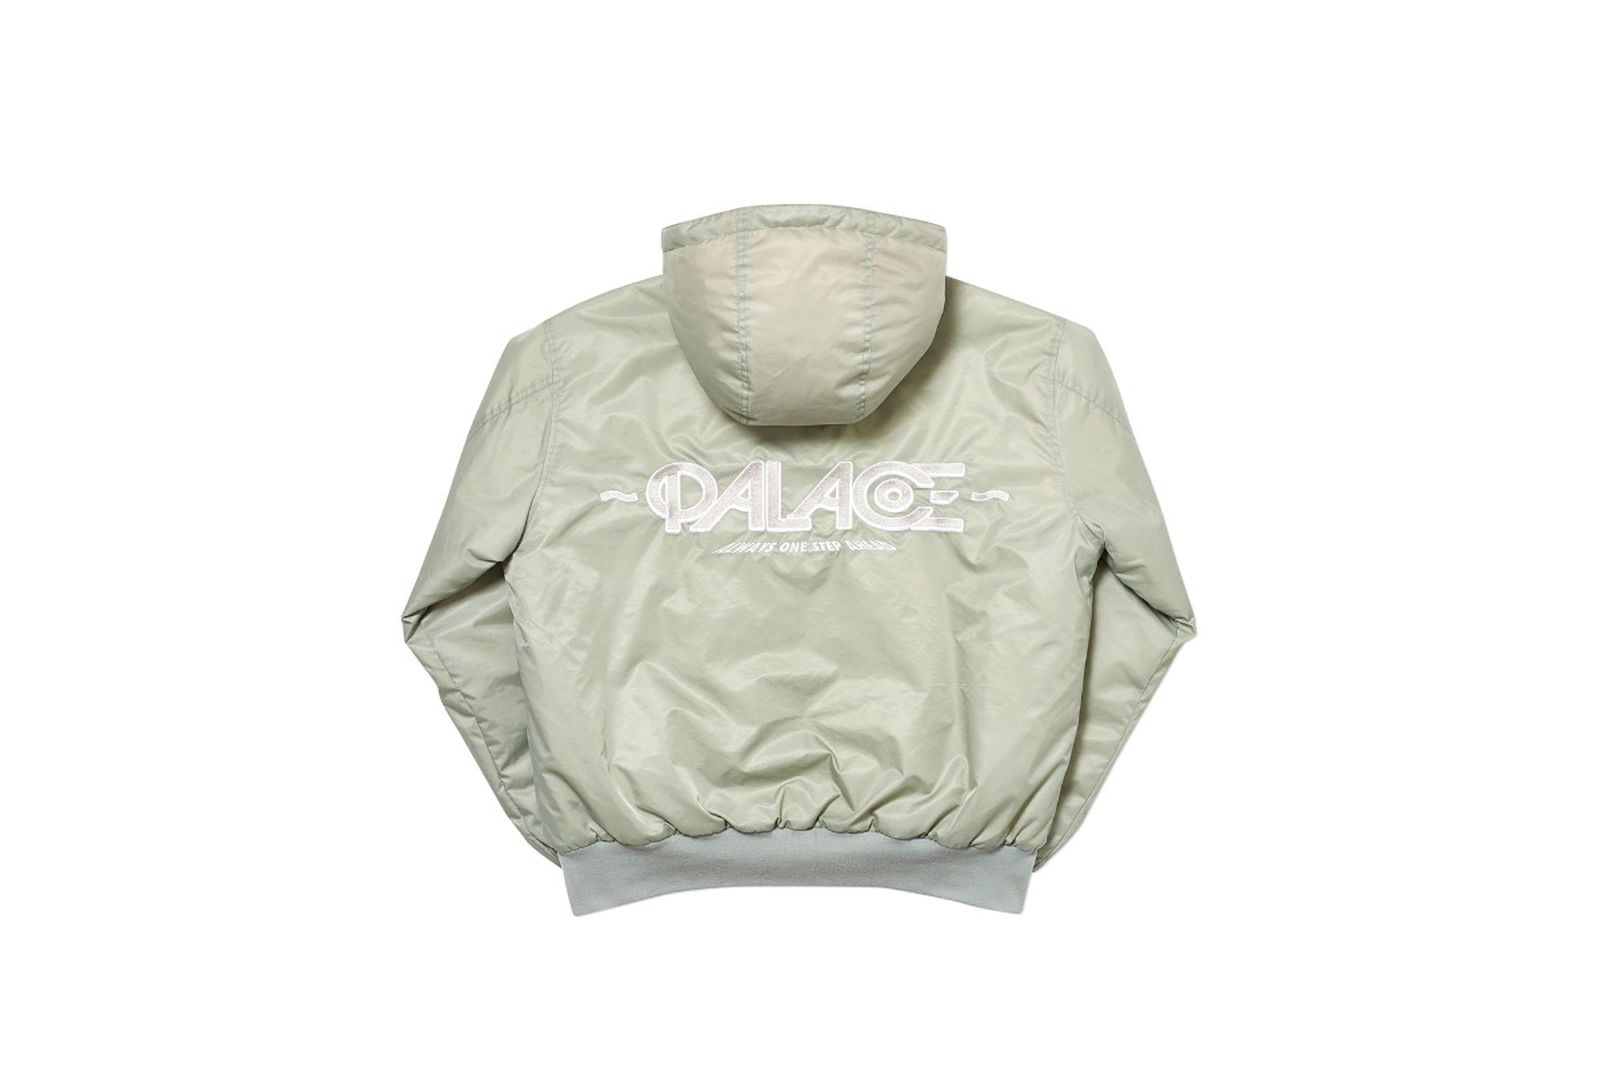 Palace 2019 Autumn jacket Obsission silver front fw19